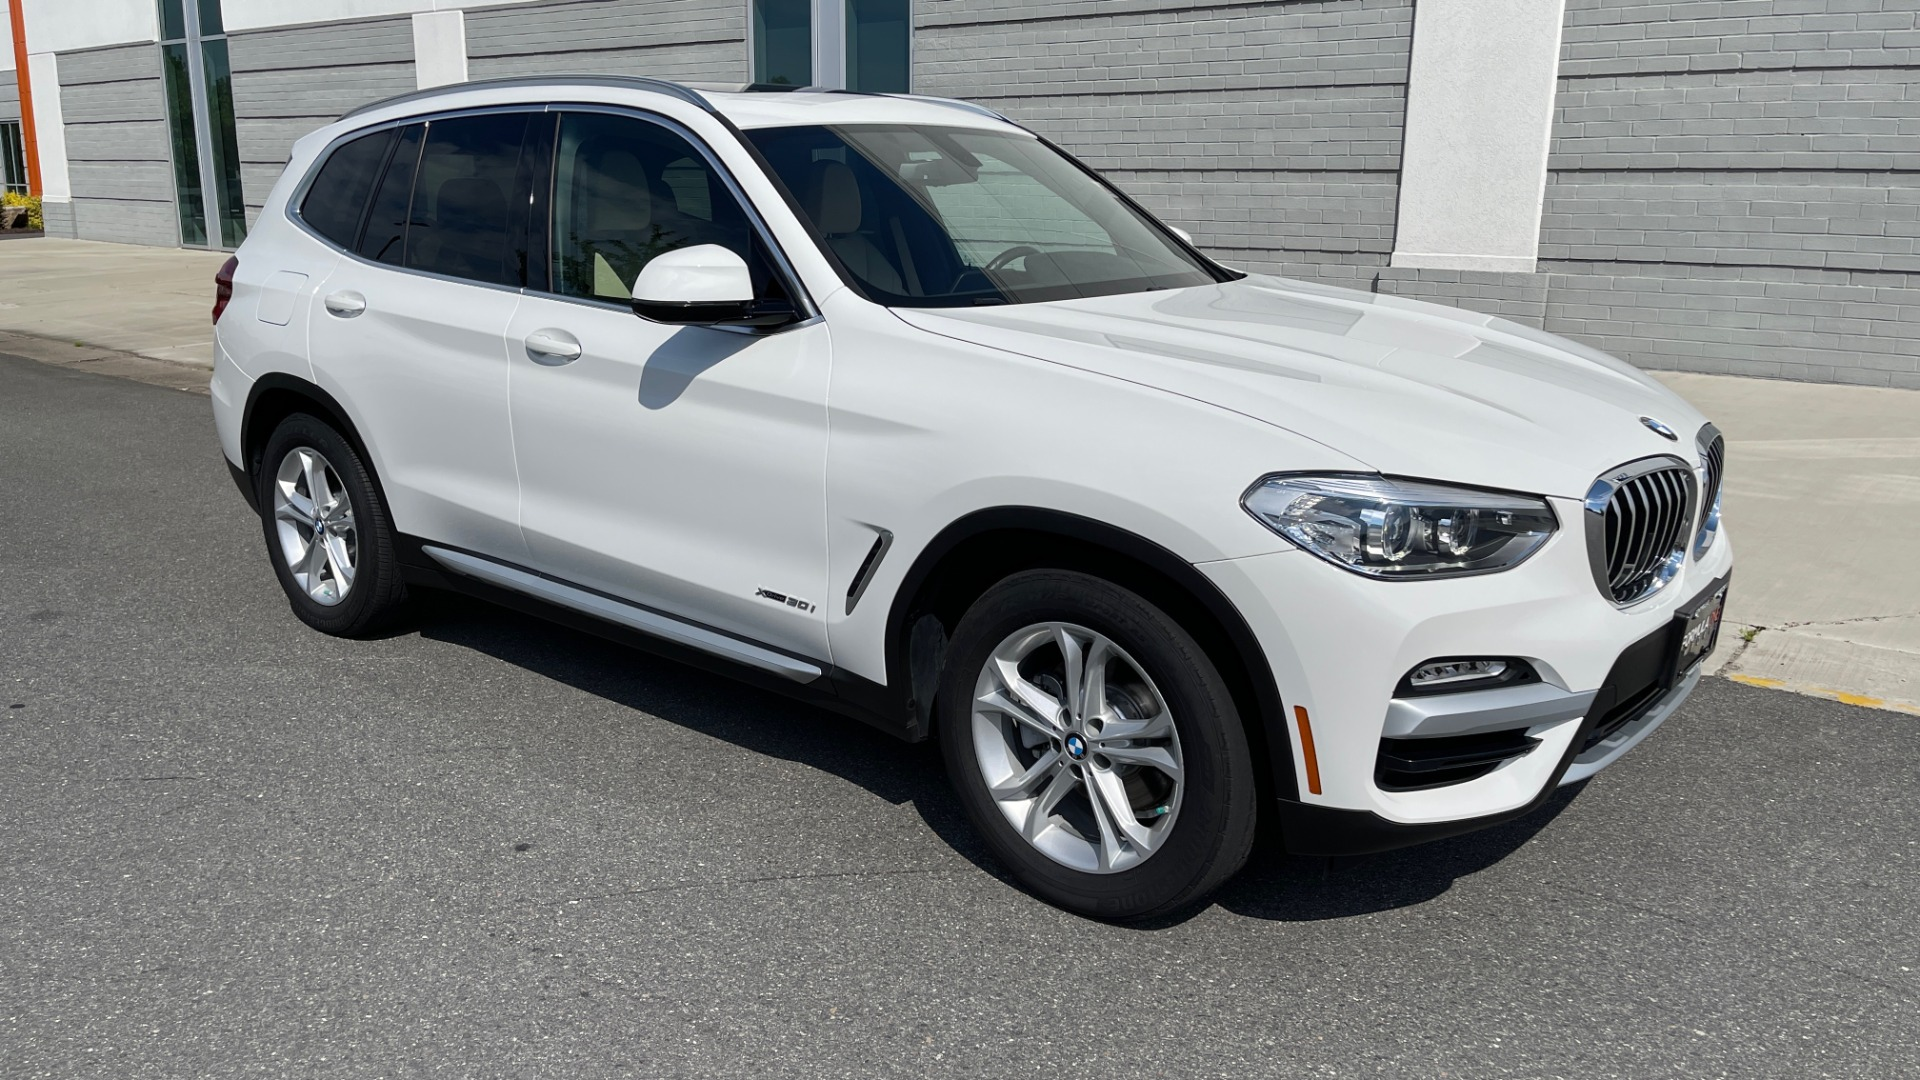 Used 2018 BMW X3 XDRIVE30I CONVENIENCE PKG / HEATED FRONT SEATS / REARVIEW for sale $36,595 at Formula Imports in Charlotte NC 28227 6